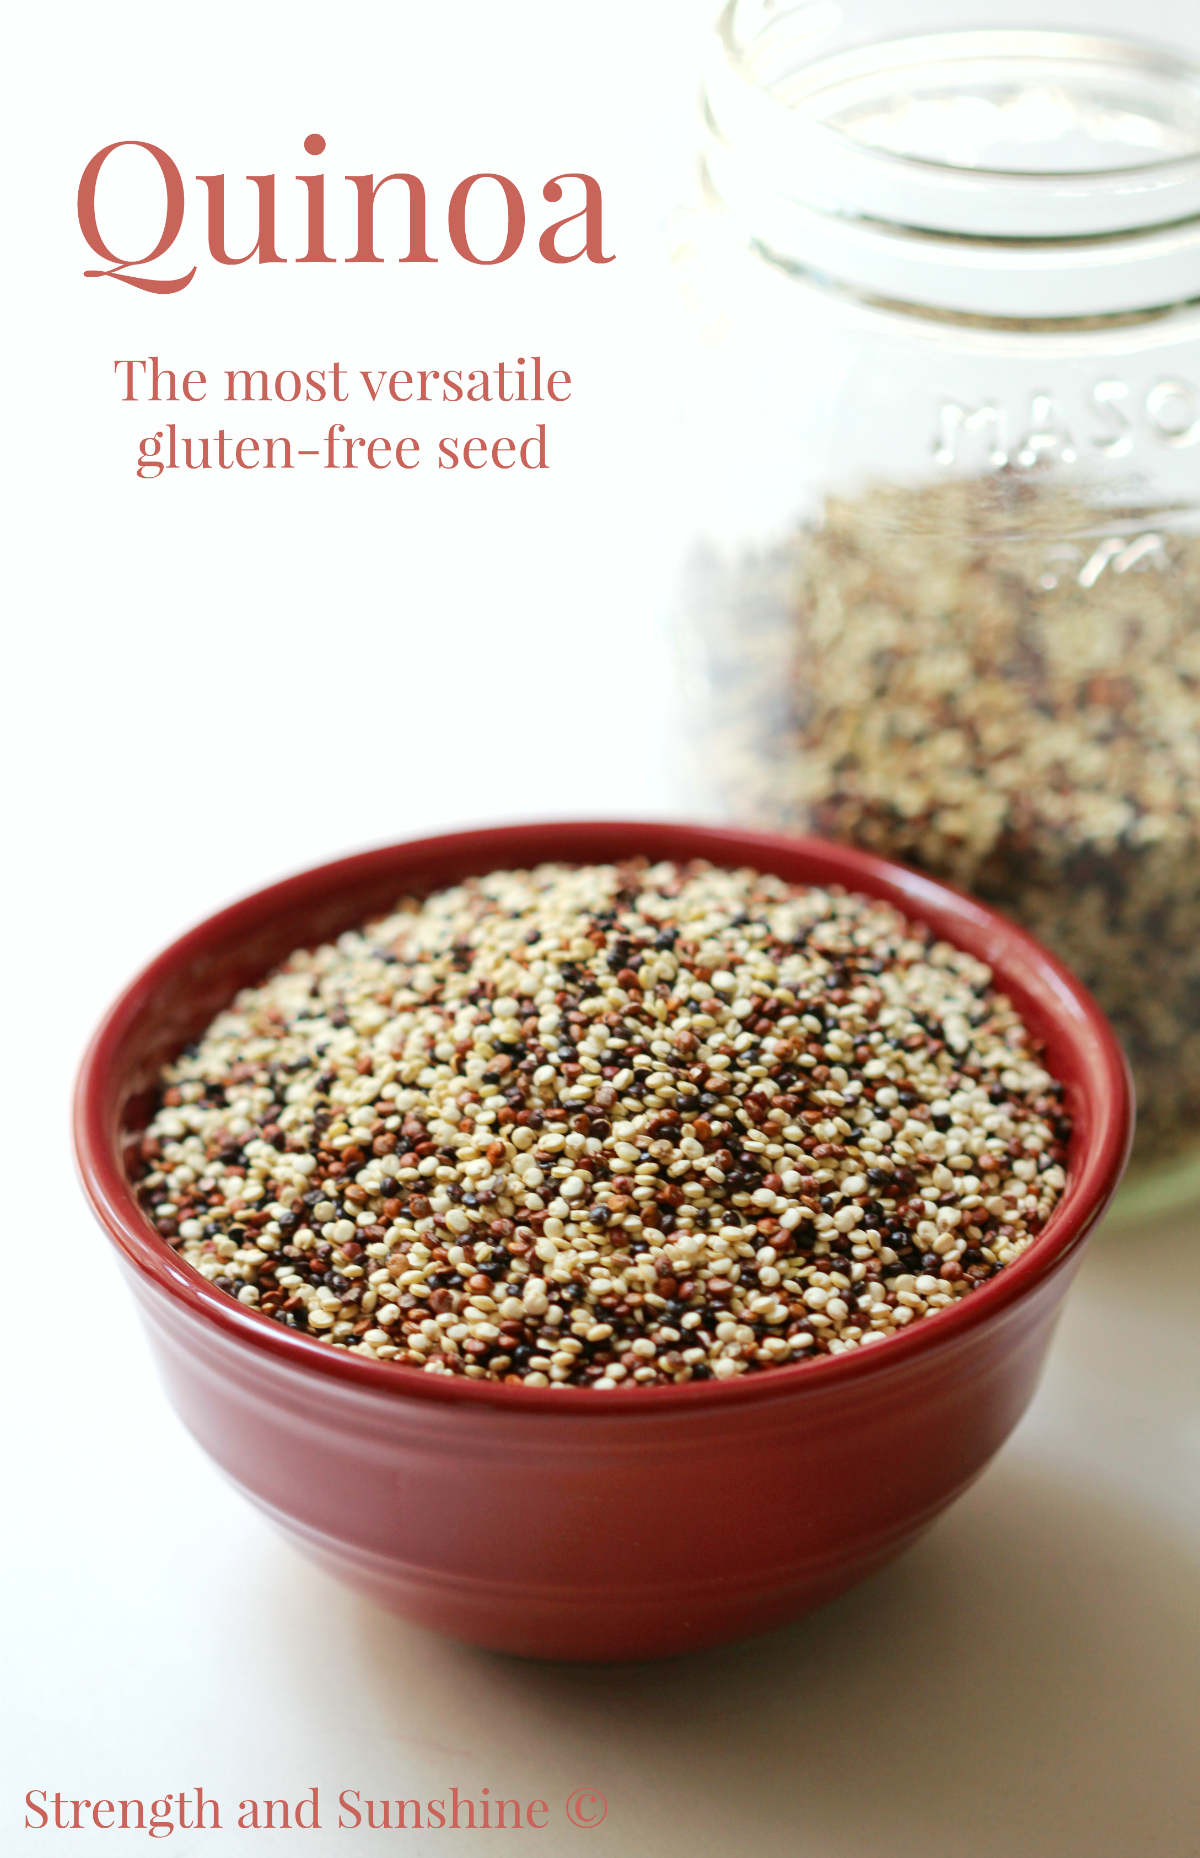 Quinoa: The Most Versatile Gluten-Free Seed | Strength and Sunshine @RebeccaGF666